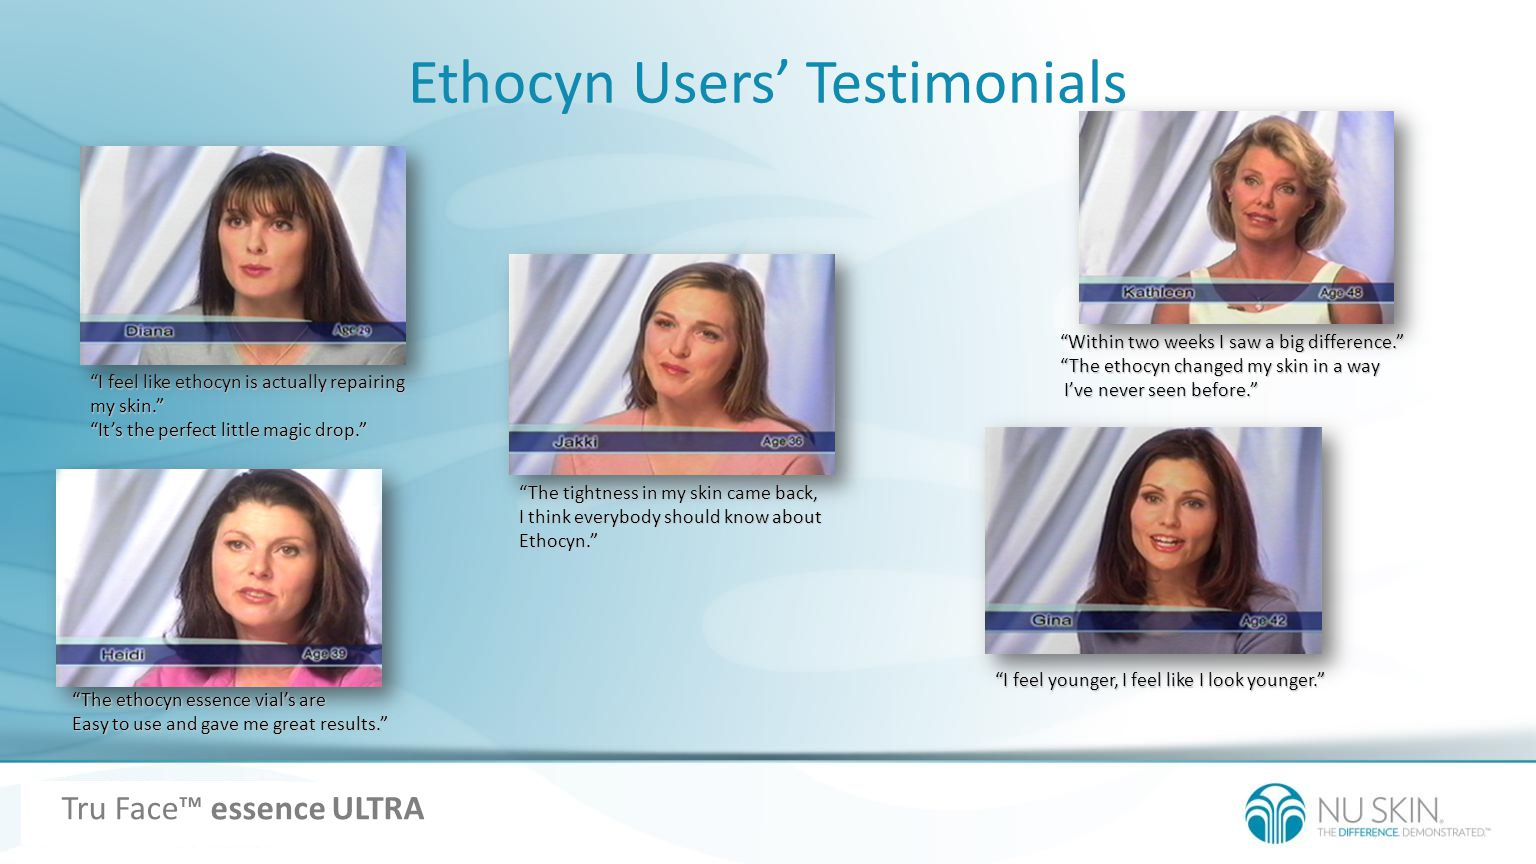 Ethocyn Users Testimonials I feel like ethocyn is actually repairing my skin. Its the perfect little magic drop. I feel younger, I feel like I look yo